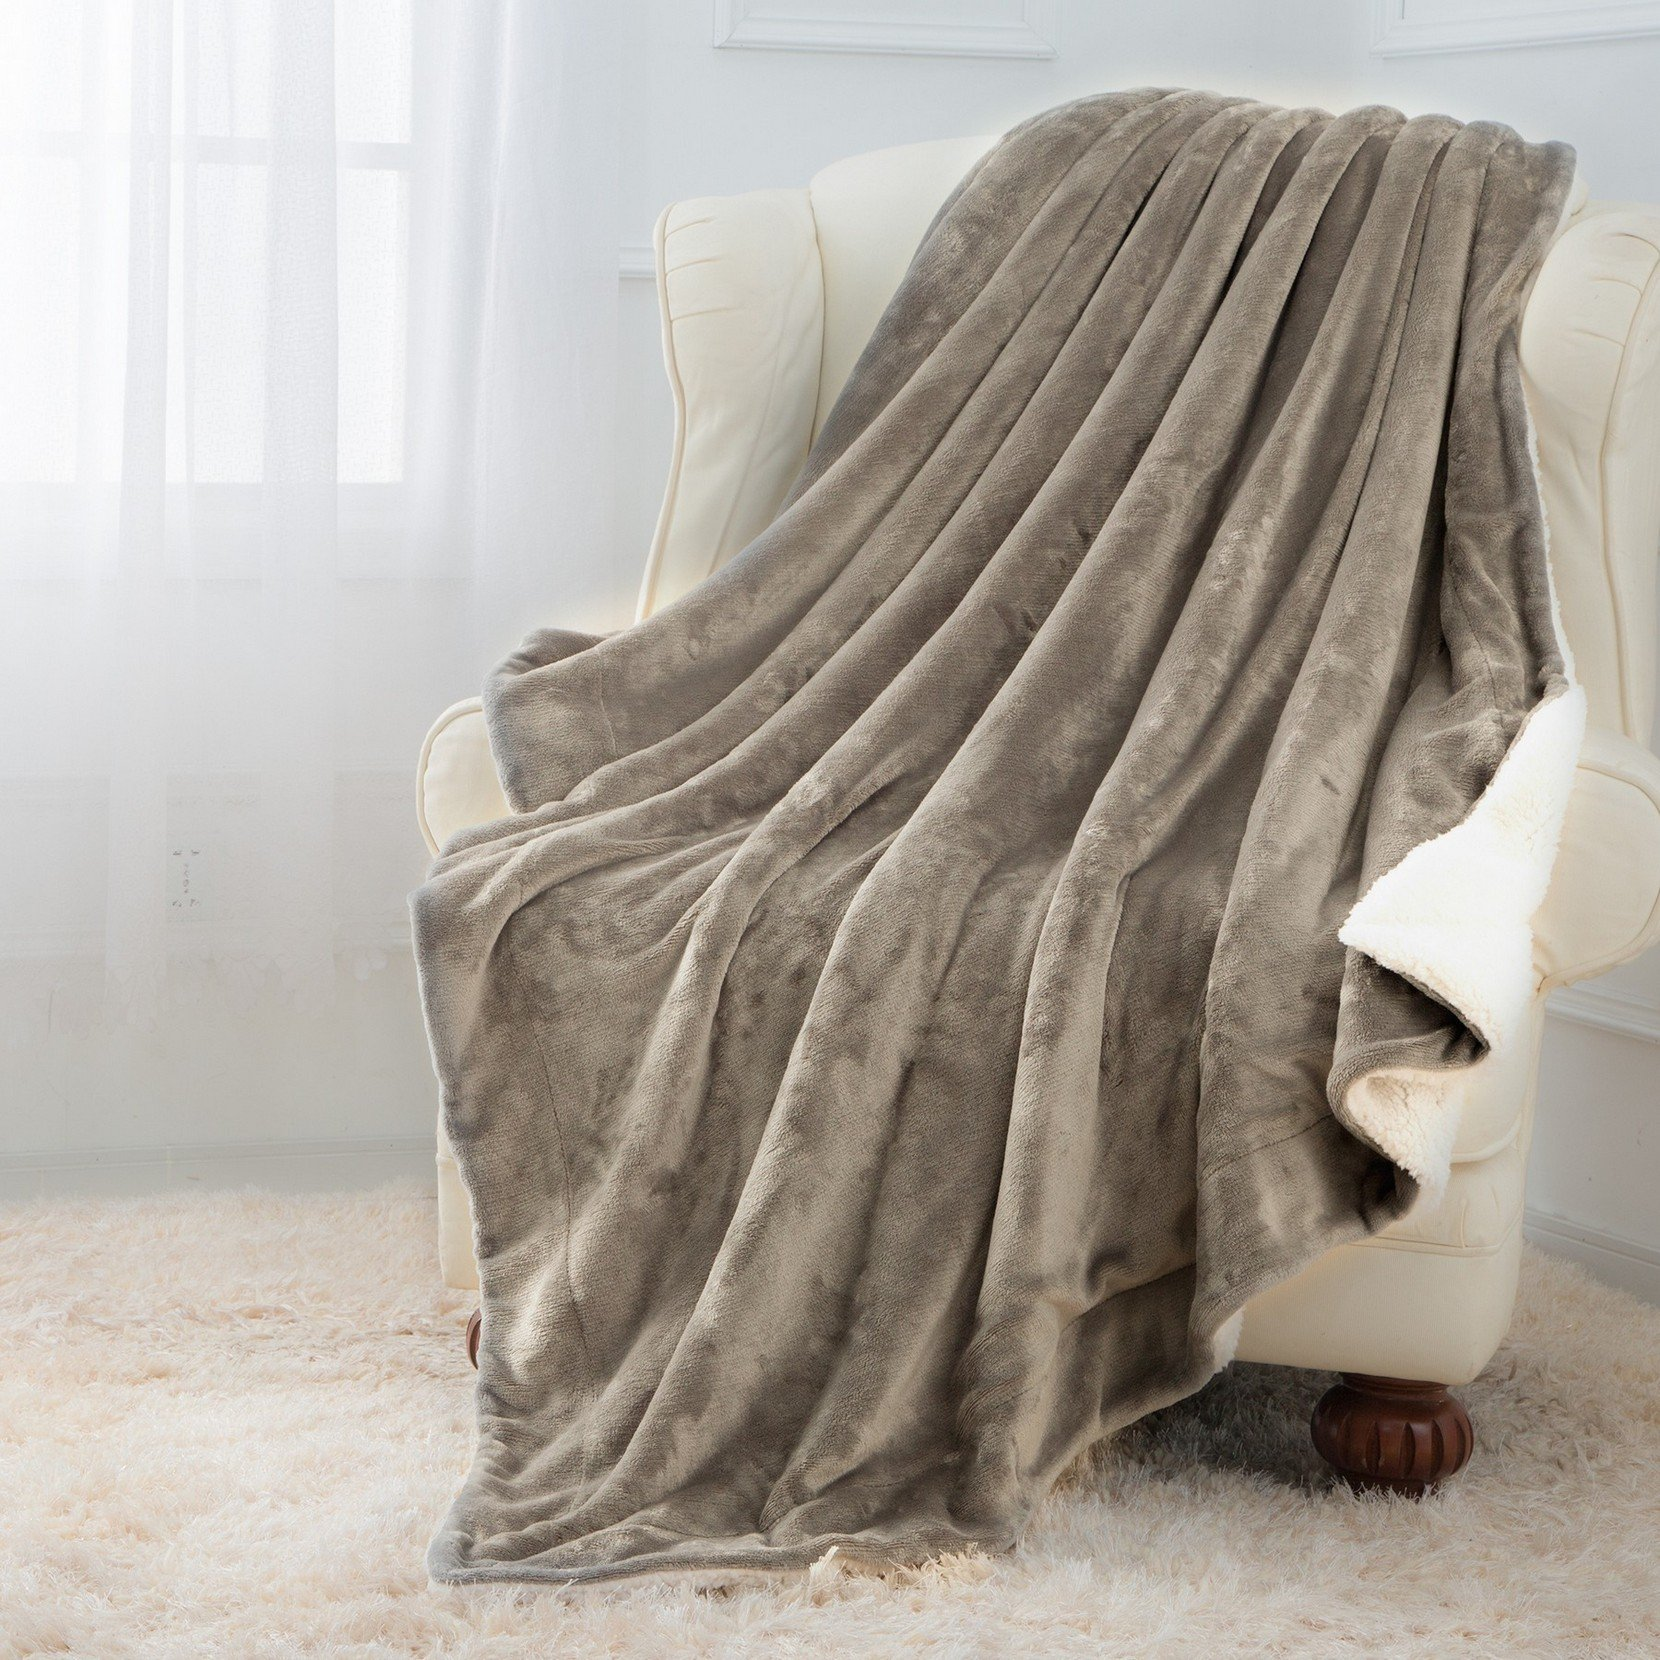 Moonen Sherpa Throw Blanket Luxurious Throw Size Brush Fabric Reversible All Season Super Soft Warm Fleece Thick Fuzzy Microplush Blanket for Bed Couch and Gift Blankets (Grey, 50x60 Inches)